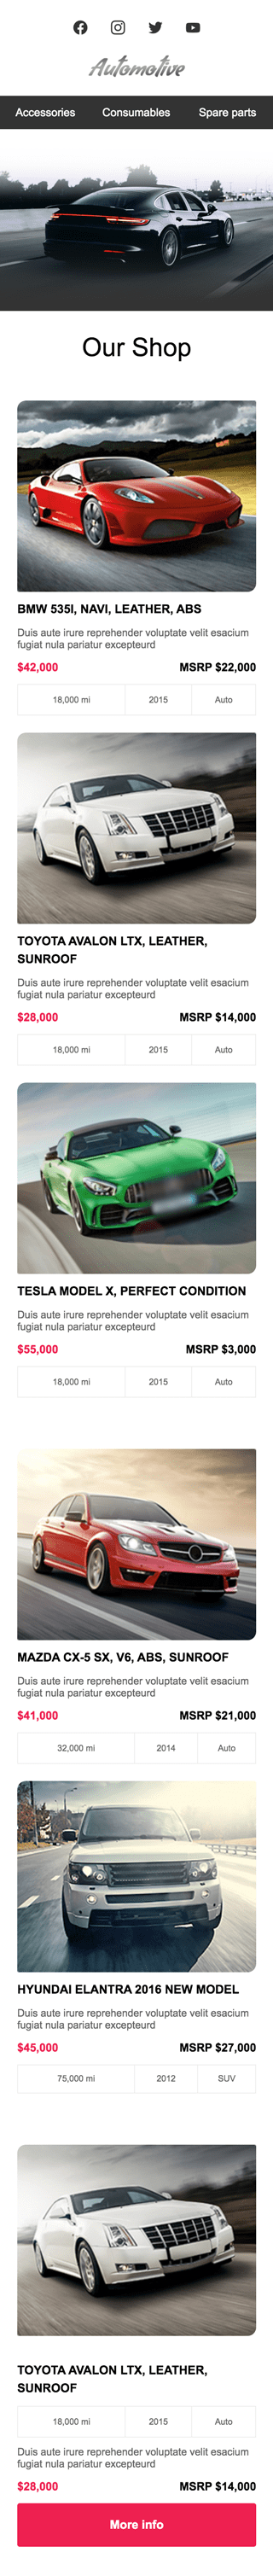 Promo Email Template «Long Road» for Auto & Moto industry mobile view